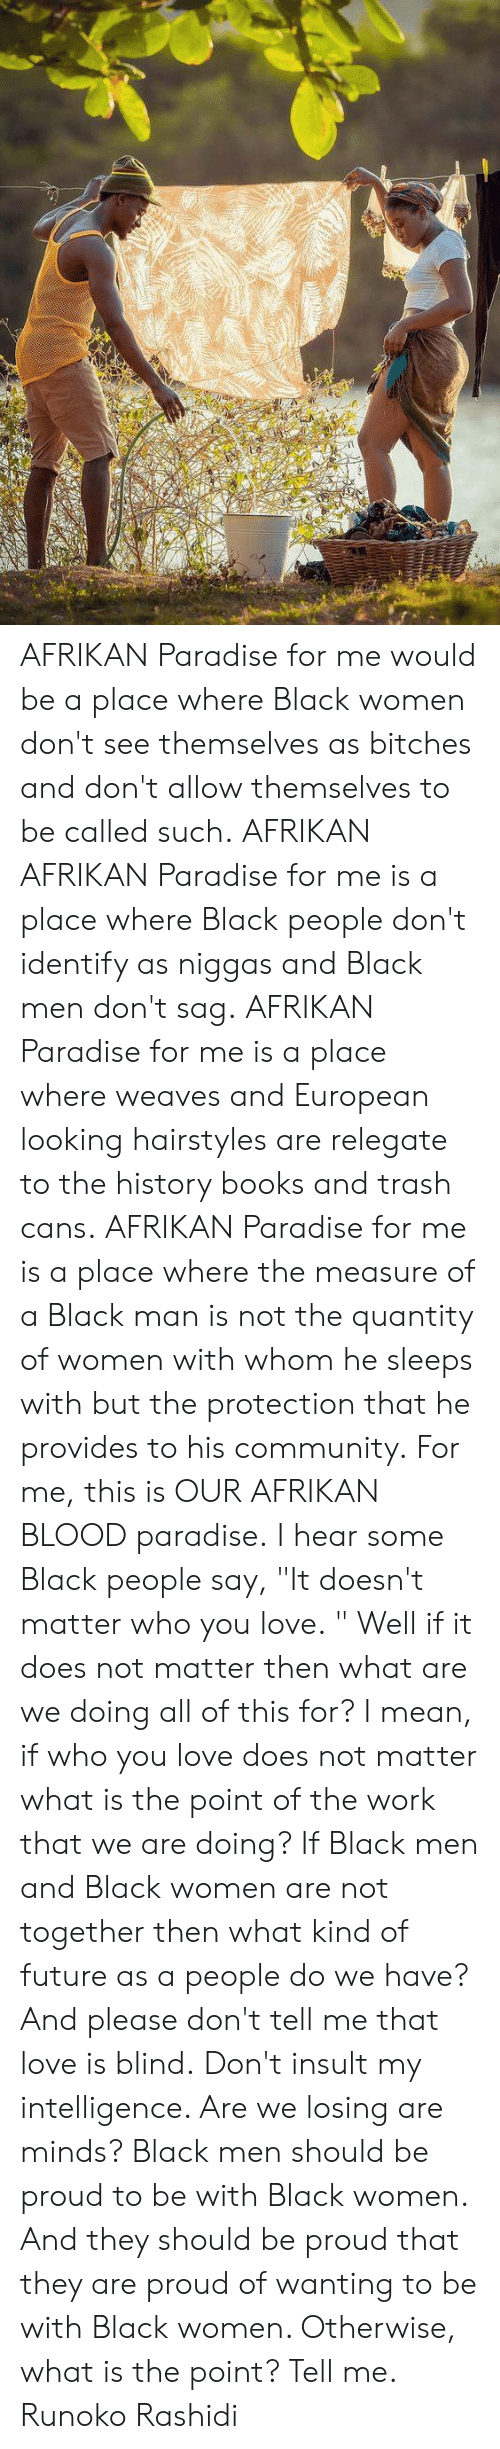 "Insult My Intelligence: AFRIKAN Paradise for me would be a place where Black women don't see themselves as bitches and don't allow themselves to be called such.  AFRIKAN AFRIKAN Paradise for me is a place where Black people don't identify as niggas and Black men don't sag.  AFRIKAN Paradise for me is a place where weaves and European looking hairstyles are relegate to the history books and trash cans.  AFRIKAN Paradise for me is a place where the measure of a Black man is not the quantity of women with whom he sleeps with but the protection that he provides to his community.  For me, this is OUR AFRIKAN BLOOD paradise.  I hear some Black people say, ""It doesn't matter who you love.  "" Well if it does not matter then what are we doing all of this for?   I mean, if who you love does not matter what is the point of the work that we are doing?   If Black men and Black women are not together then what kind of future as a people do we have?   And please don't tell me that love is blind.   Don't insult my intelligence.   Are we losing are minds?   Black men should be proud to be with Black women.  And they should be proud that they are proud of wanting to be with Black women. Otherwise, what is the point?   Tell me.  Runoko Rashidi"